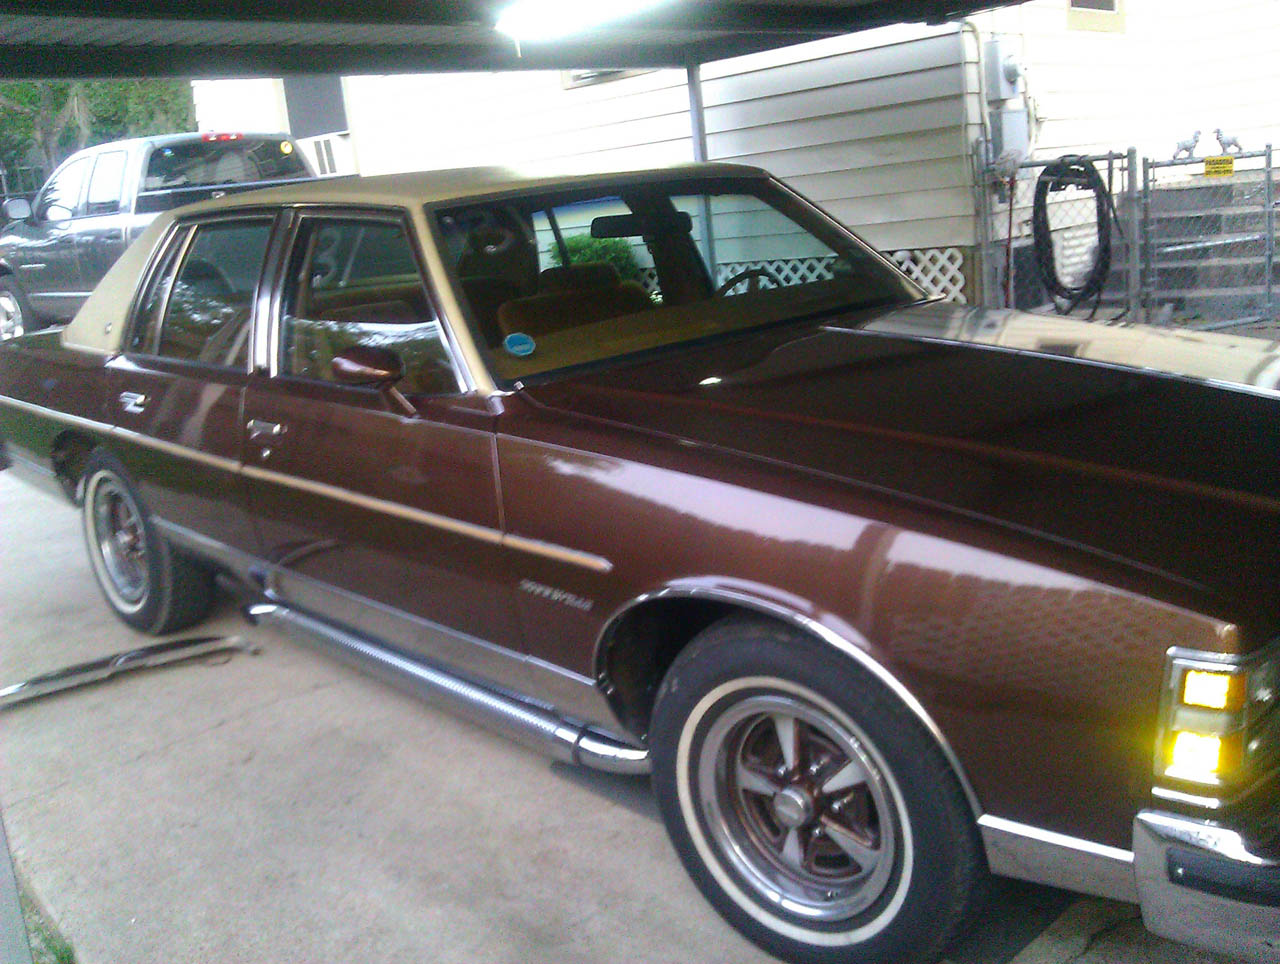 Heritage Brown 1979 Pontiac Bonneville